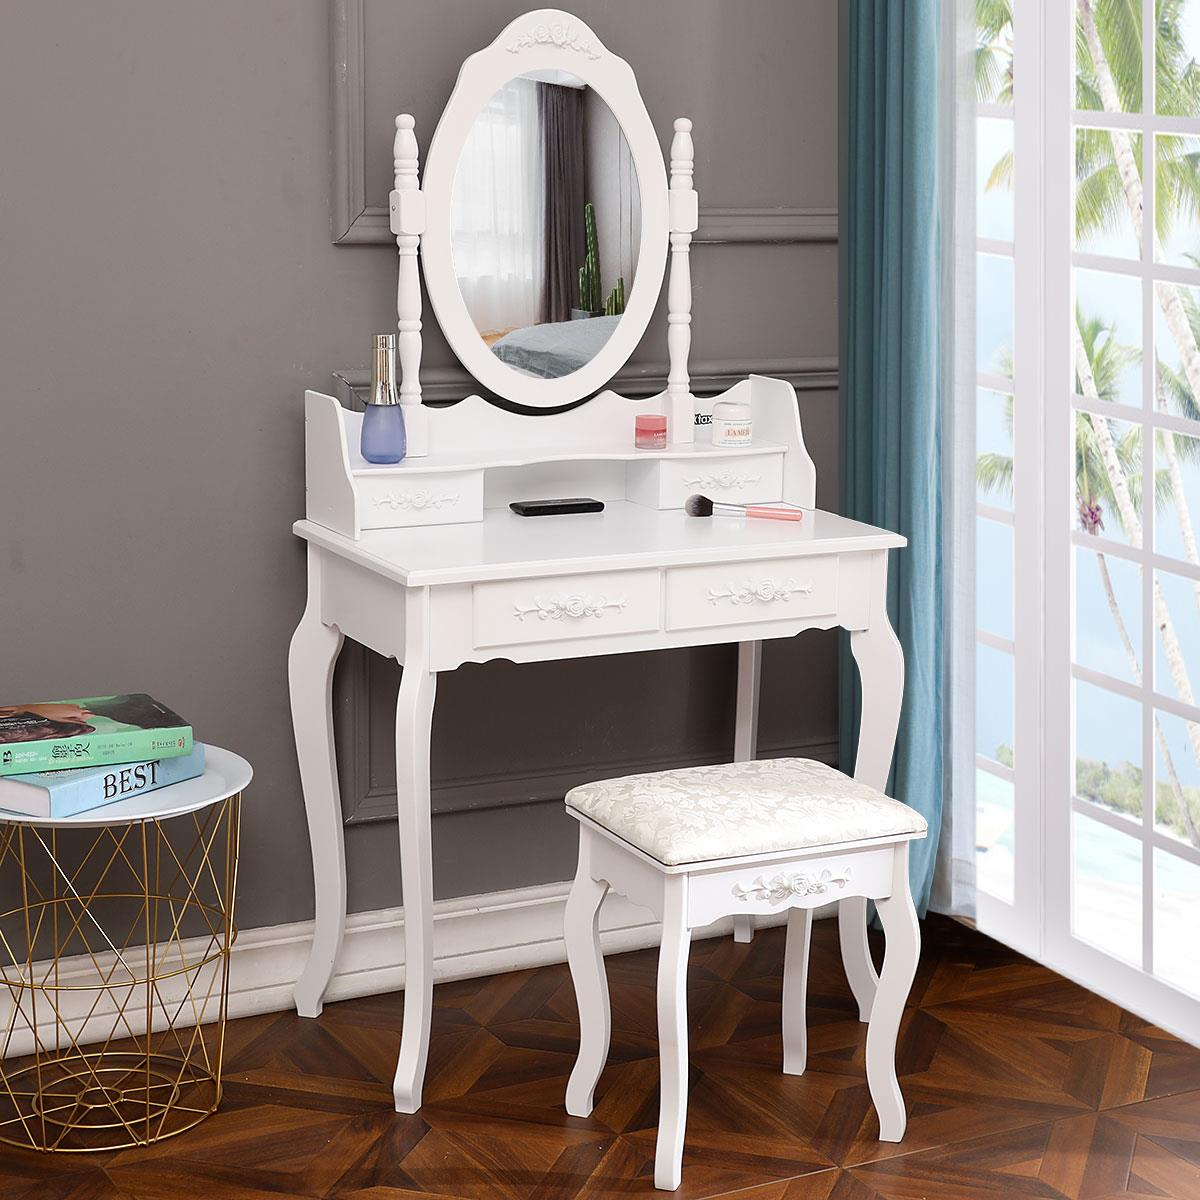 ktaxon elegance white dressing table vanity table and stool set wood makeup desk with 4 drawers mirror walmart com